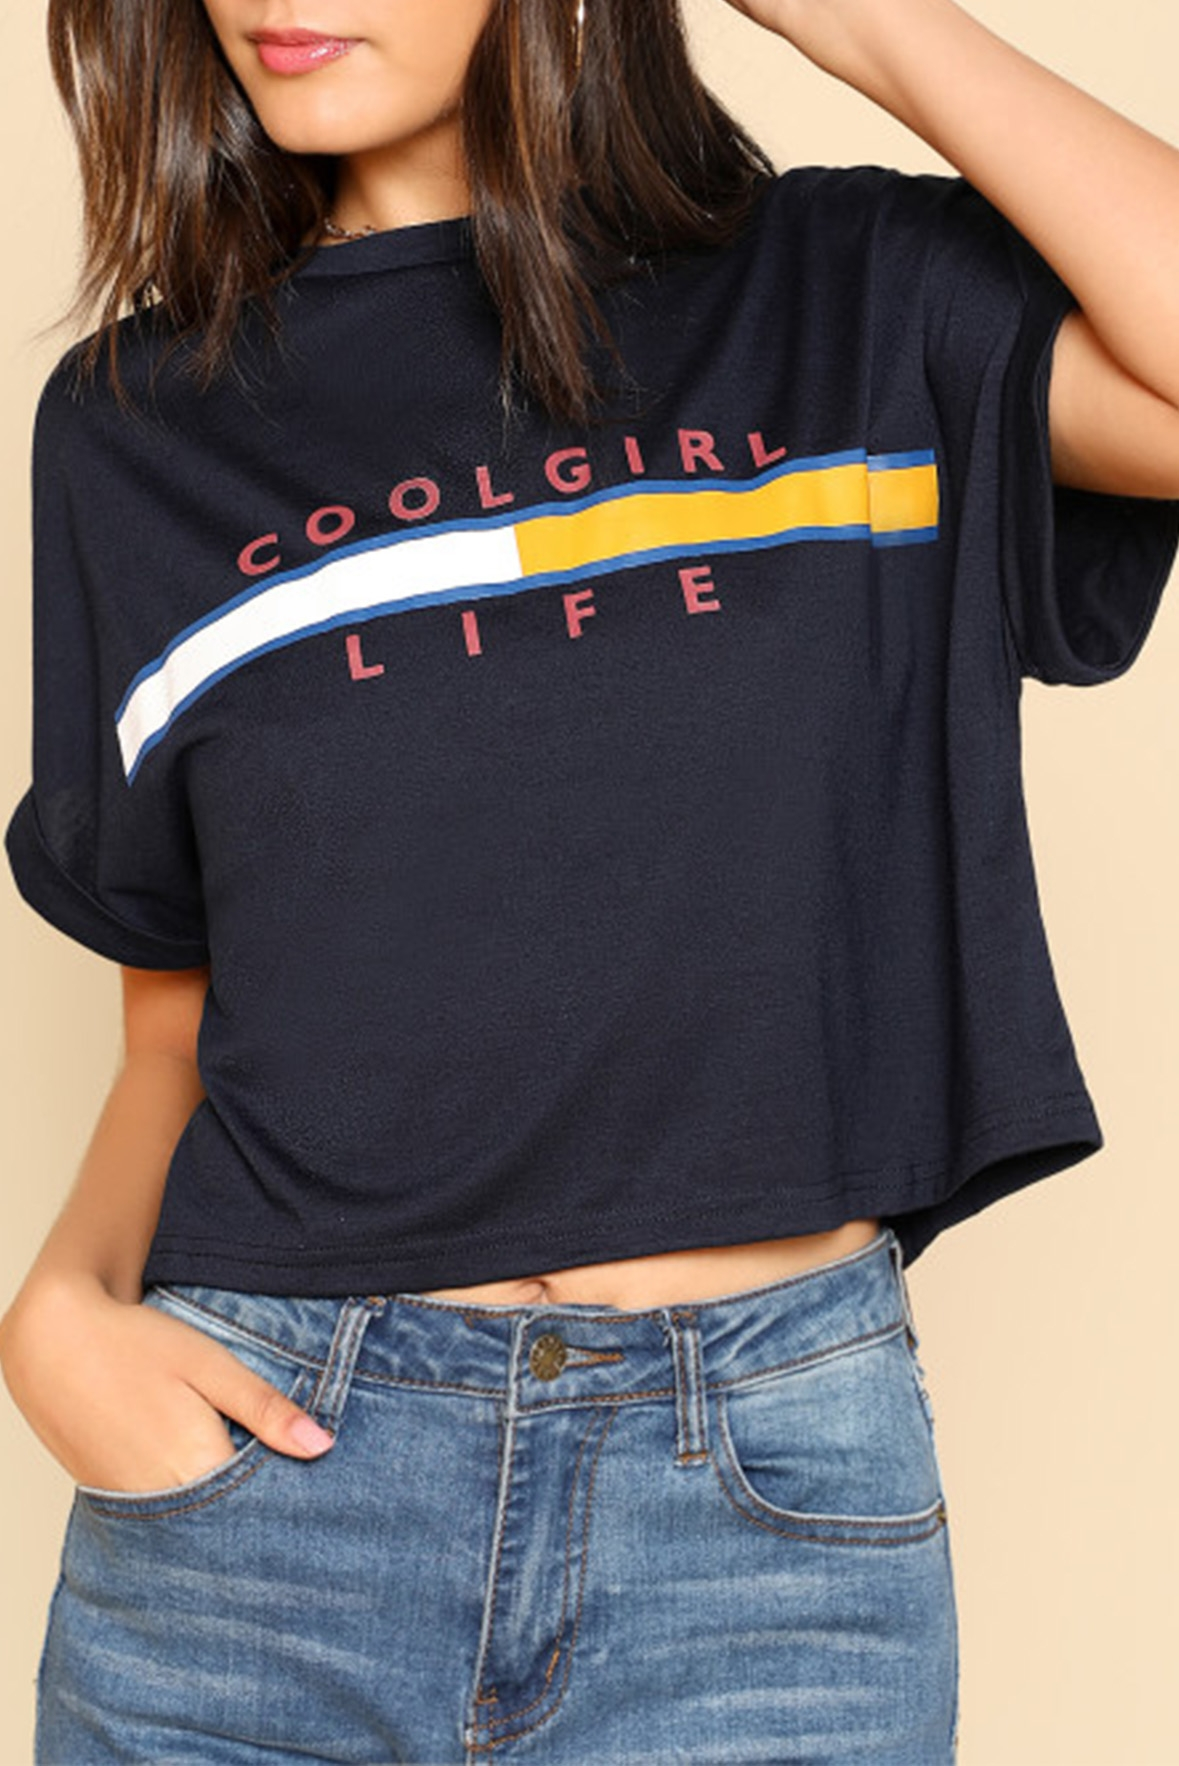 Cool girl life tee black